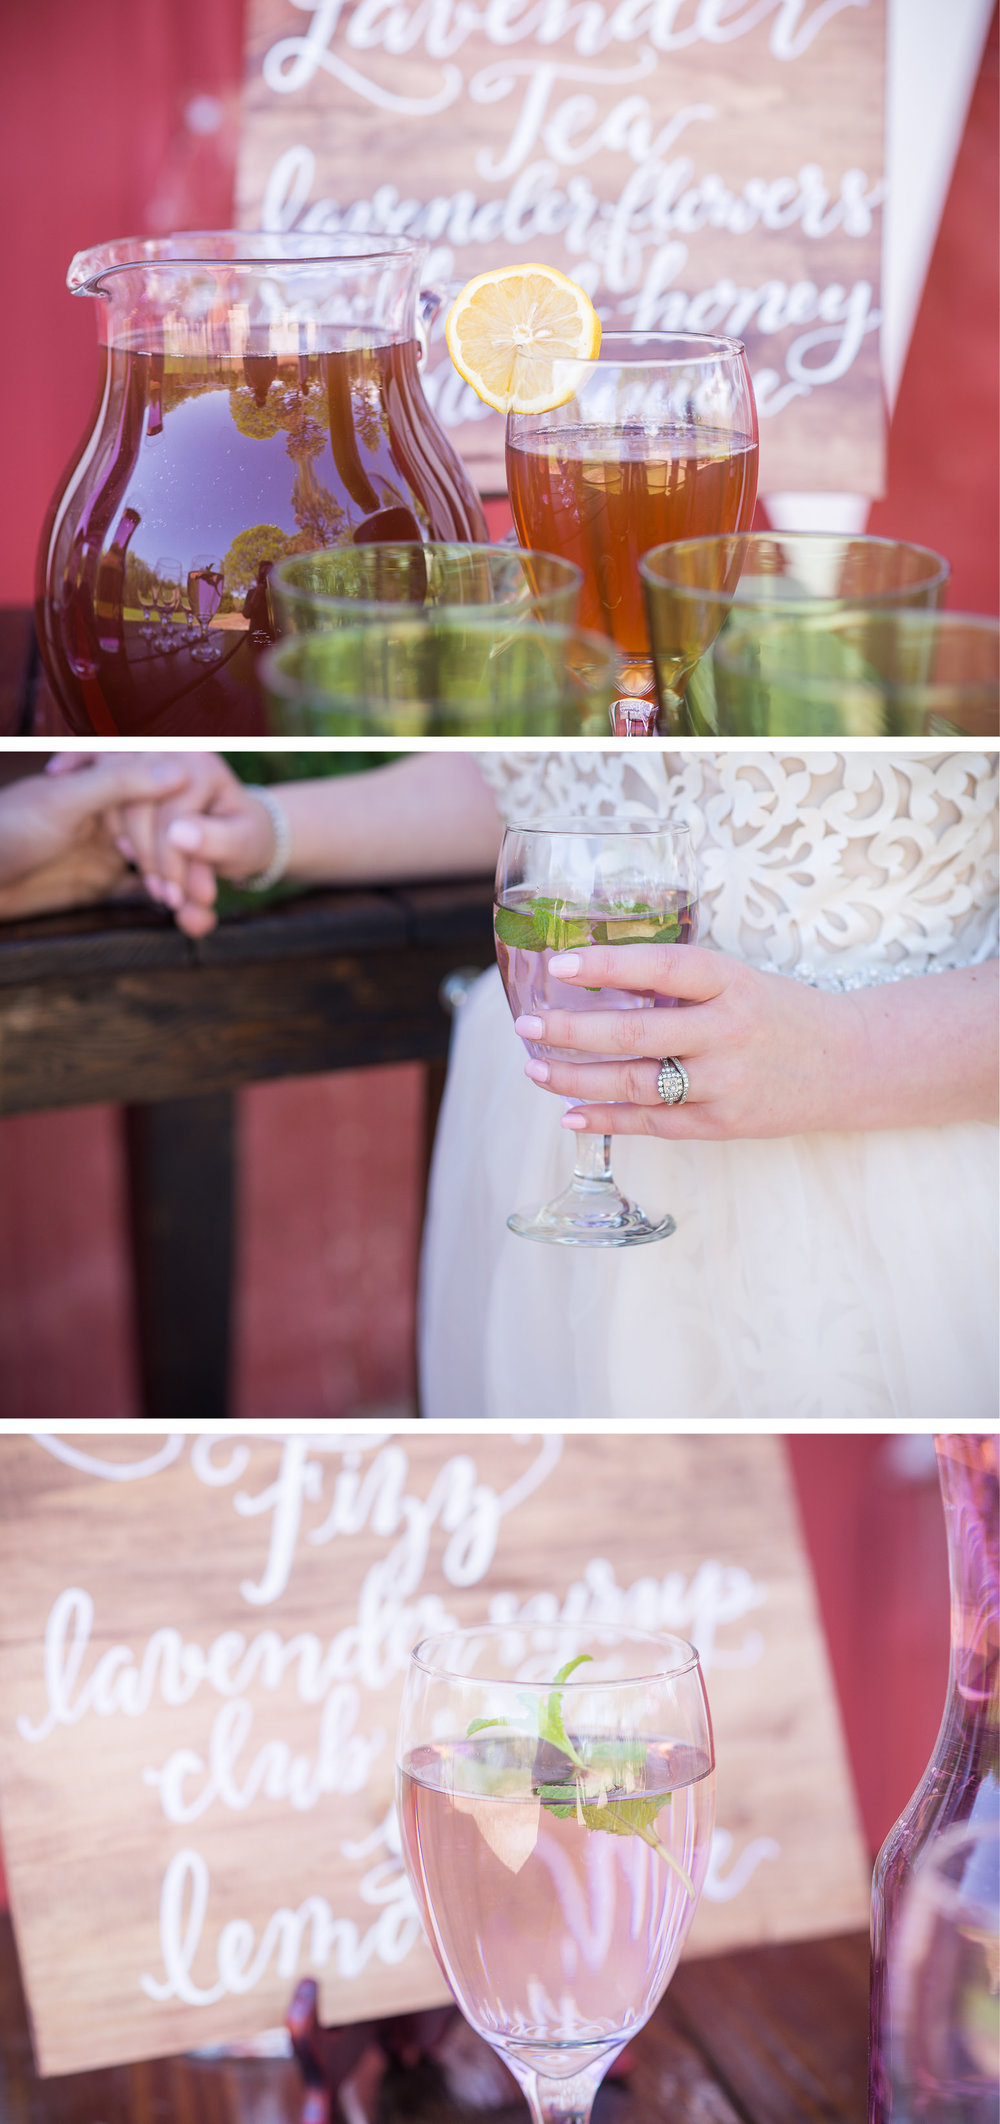 Charlotte-Wedding-Stationer-Lemon-and-Lavender-Styled-Shoot-Magnificent-Moments-Cami-Ann7.jpg